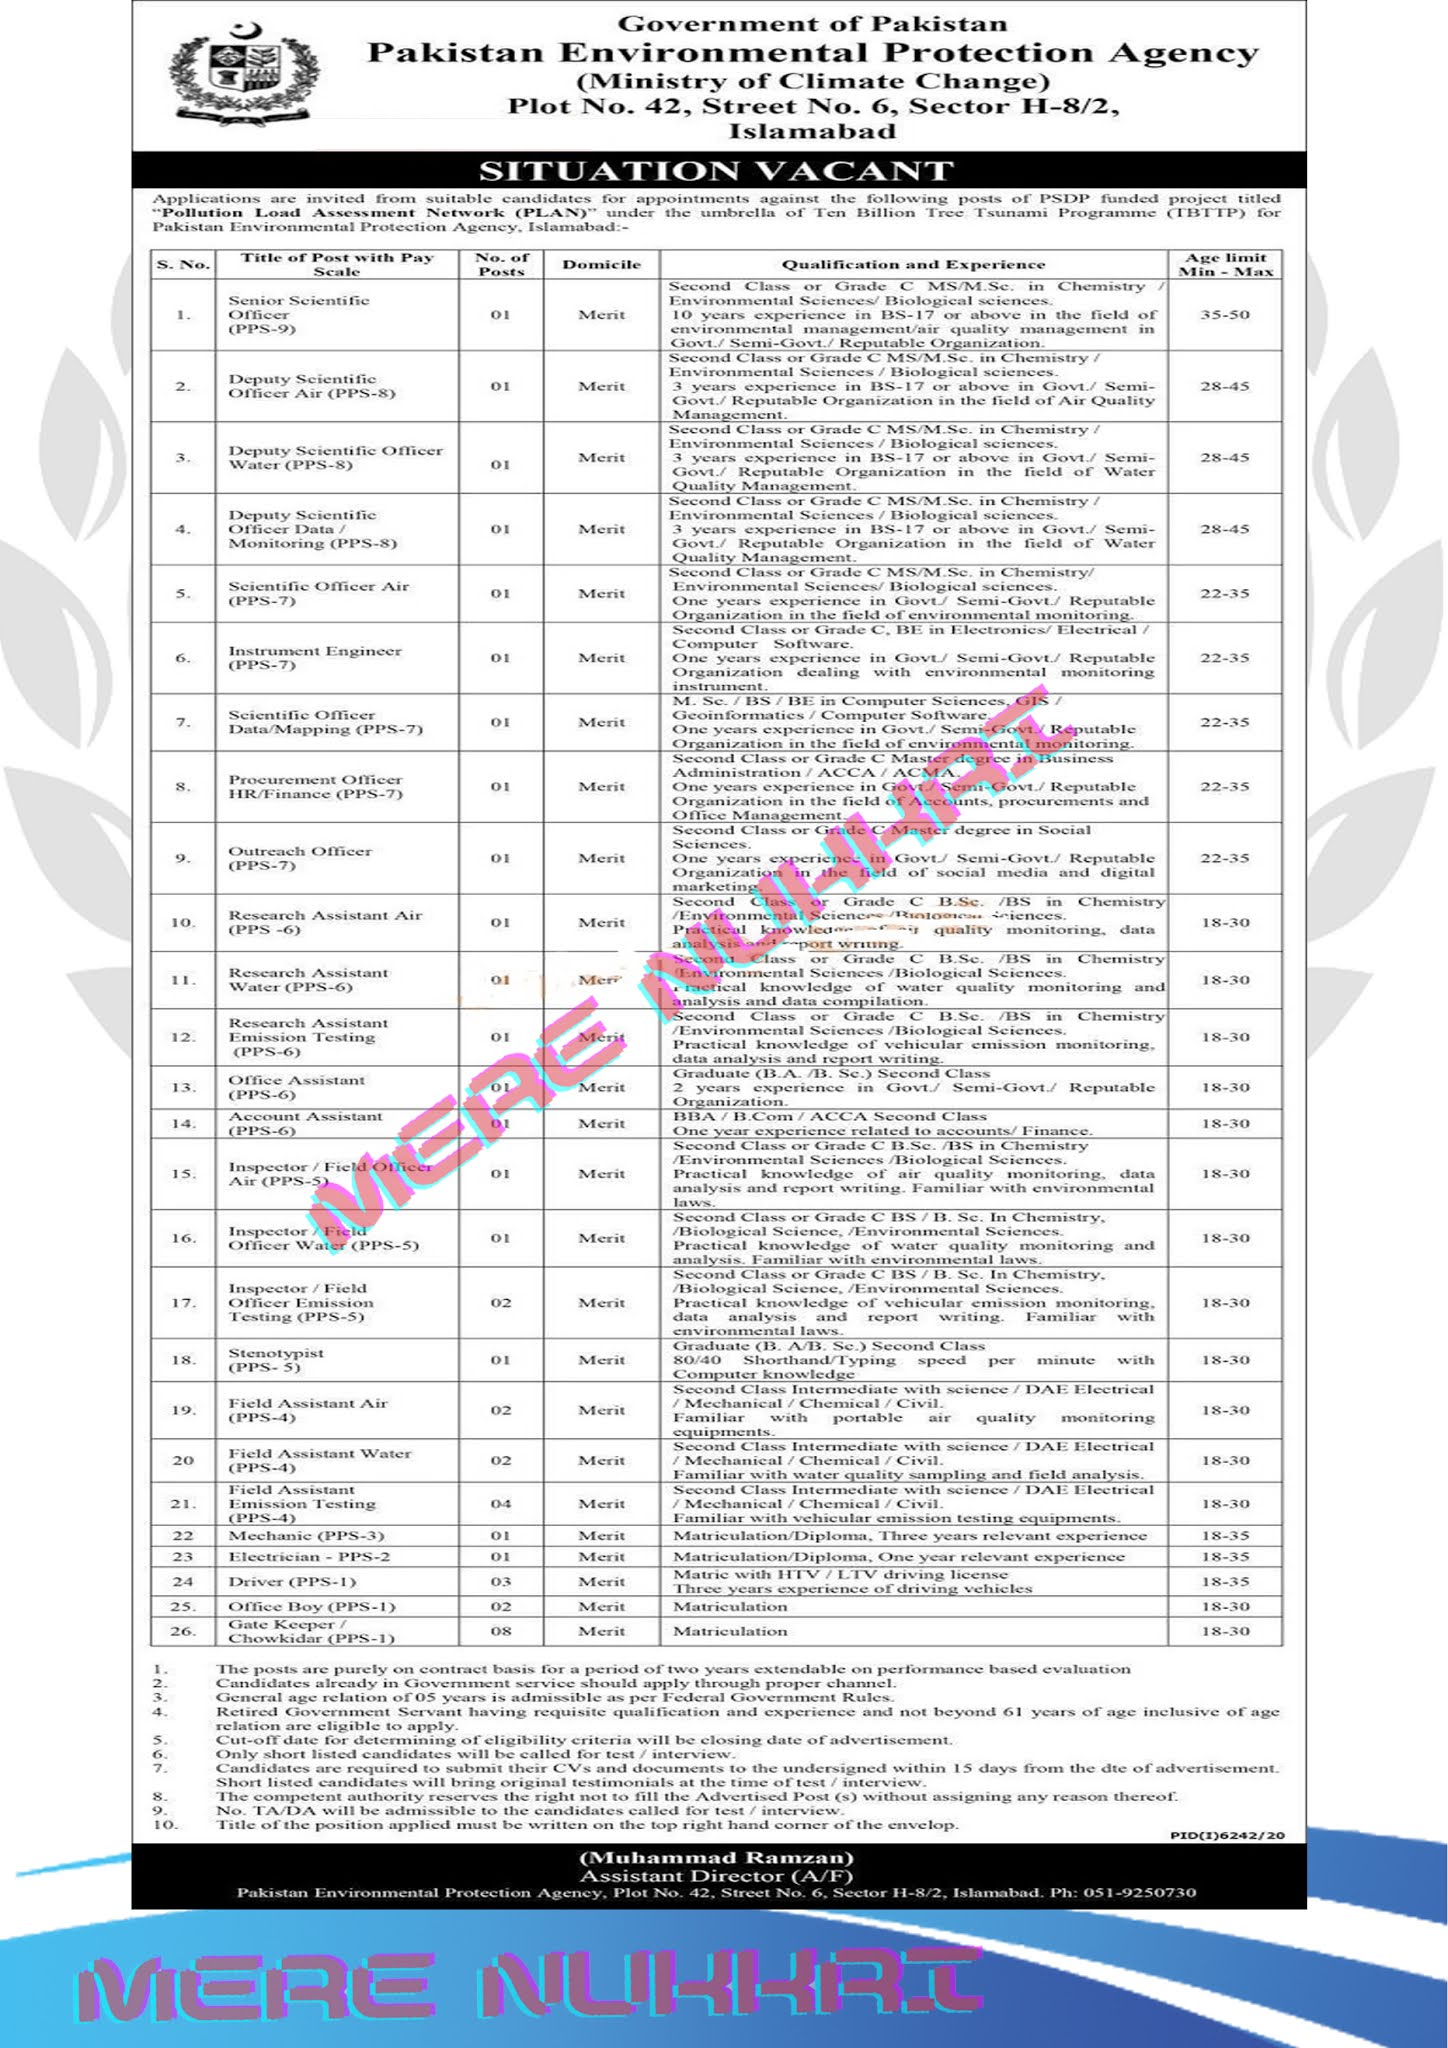 Pakistan Environmental Protection Agency Govt of Pakistan Jobs |Ministry of Climate Change MOCC Jobs 2021